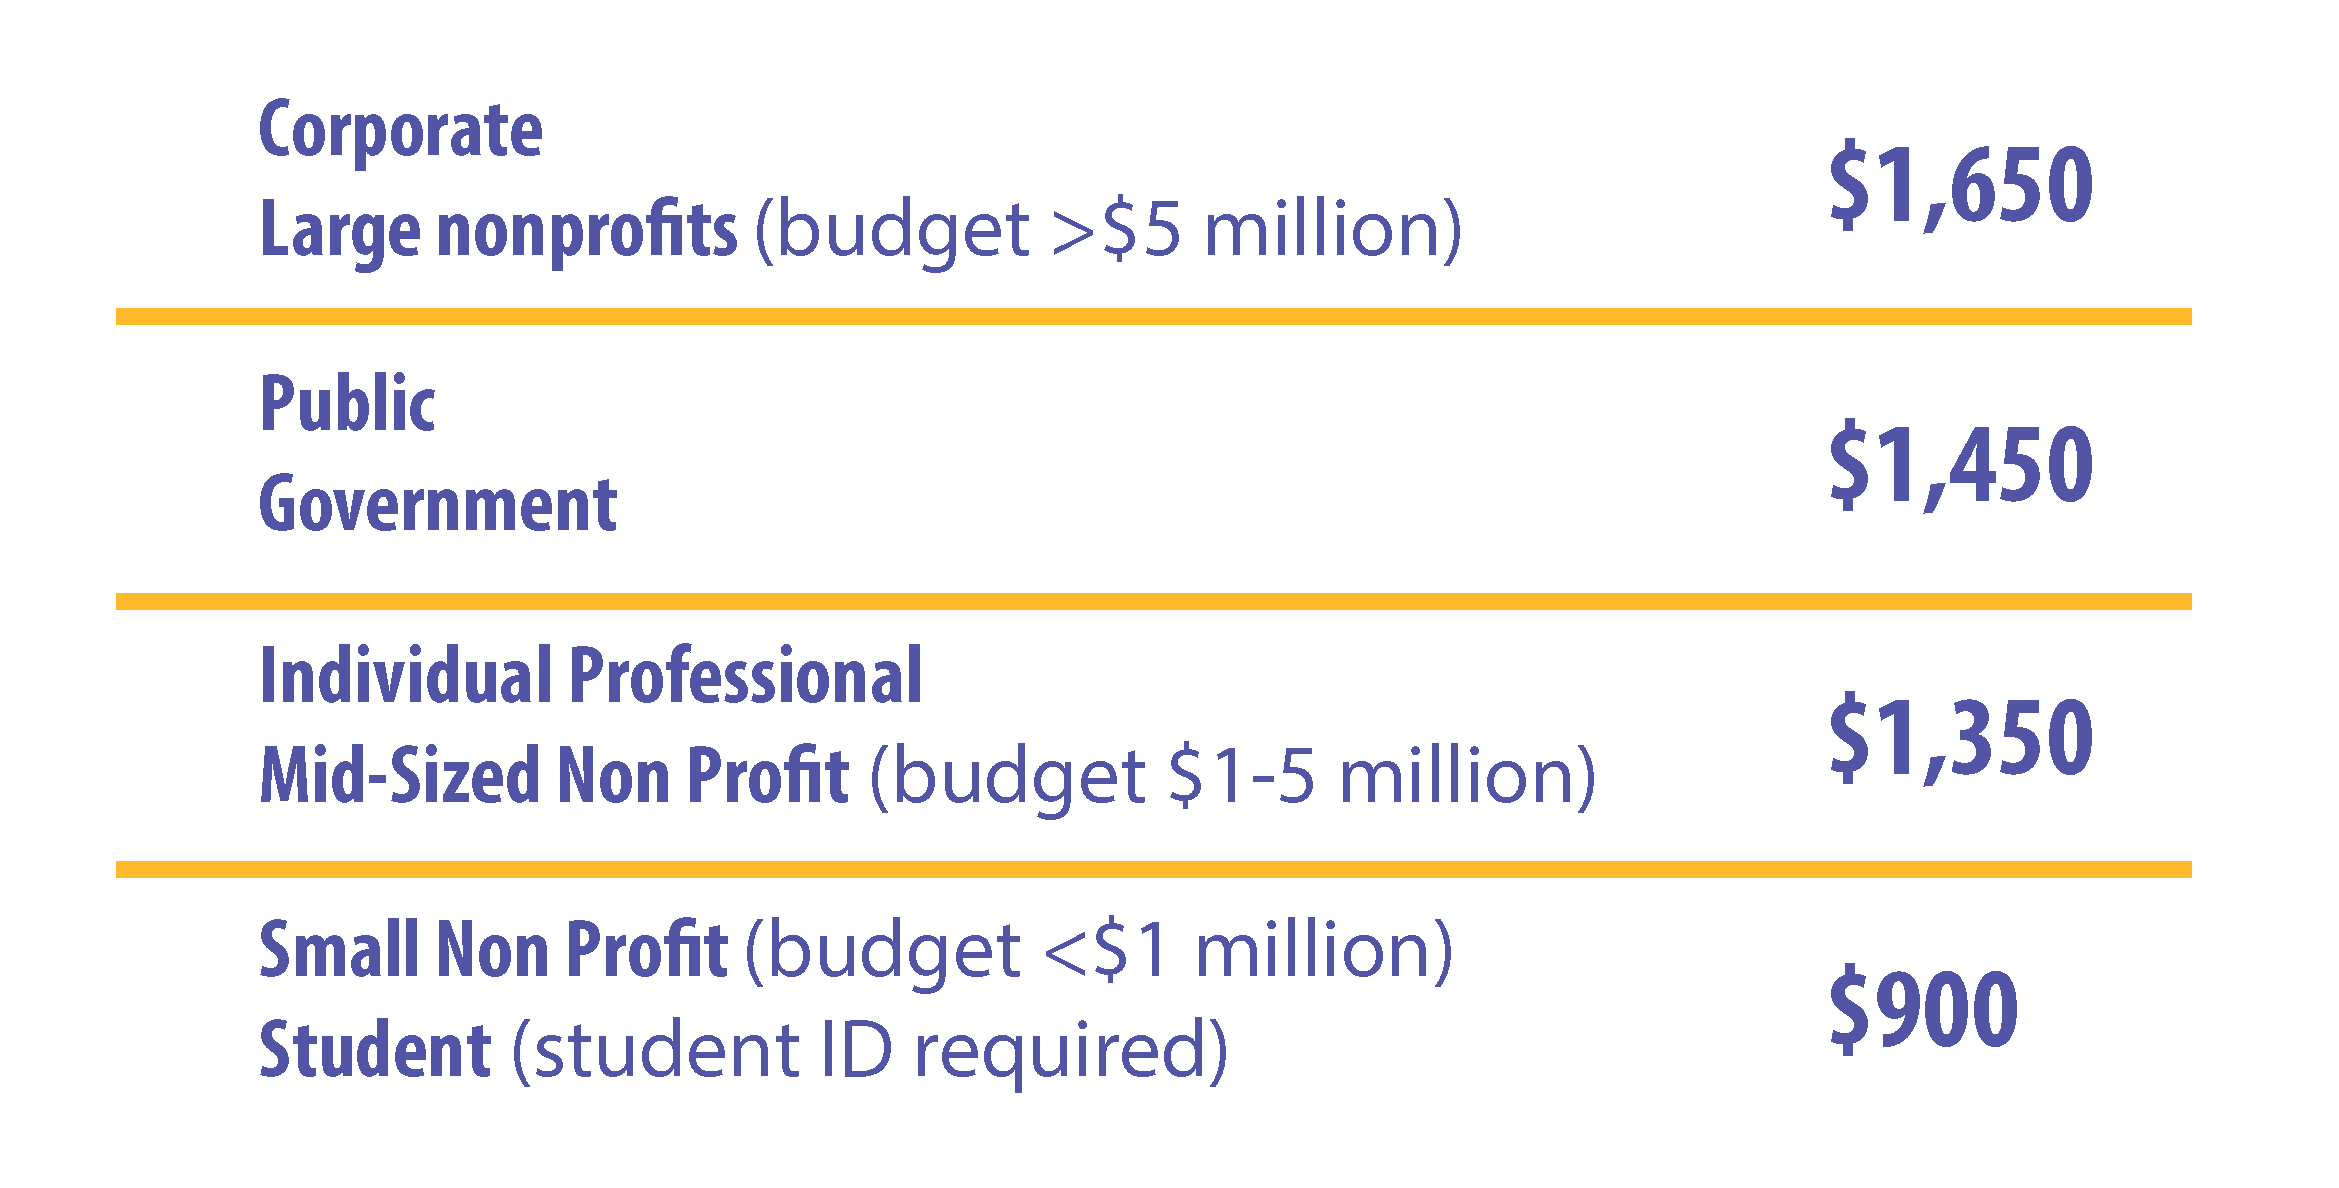 Course Pricing: Corporate or large nonprofit - $1,650, Public or government - $1,450, Independent Consultant or Mid-sized nonprofit - $1,350, Student or small non-profit - $900